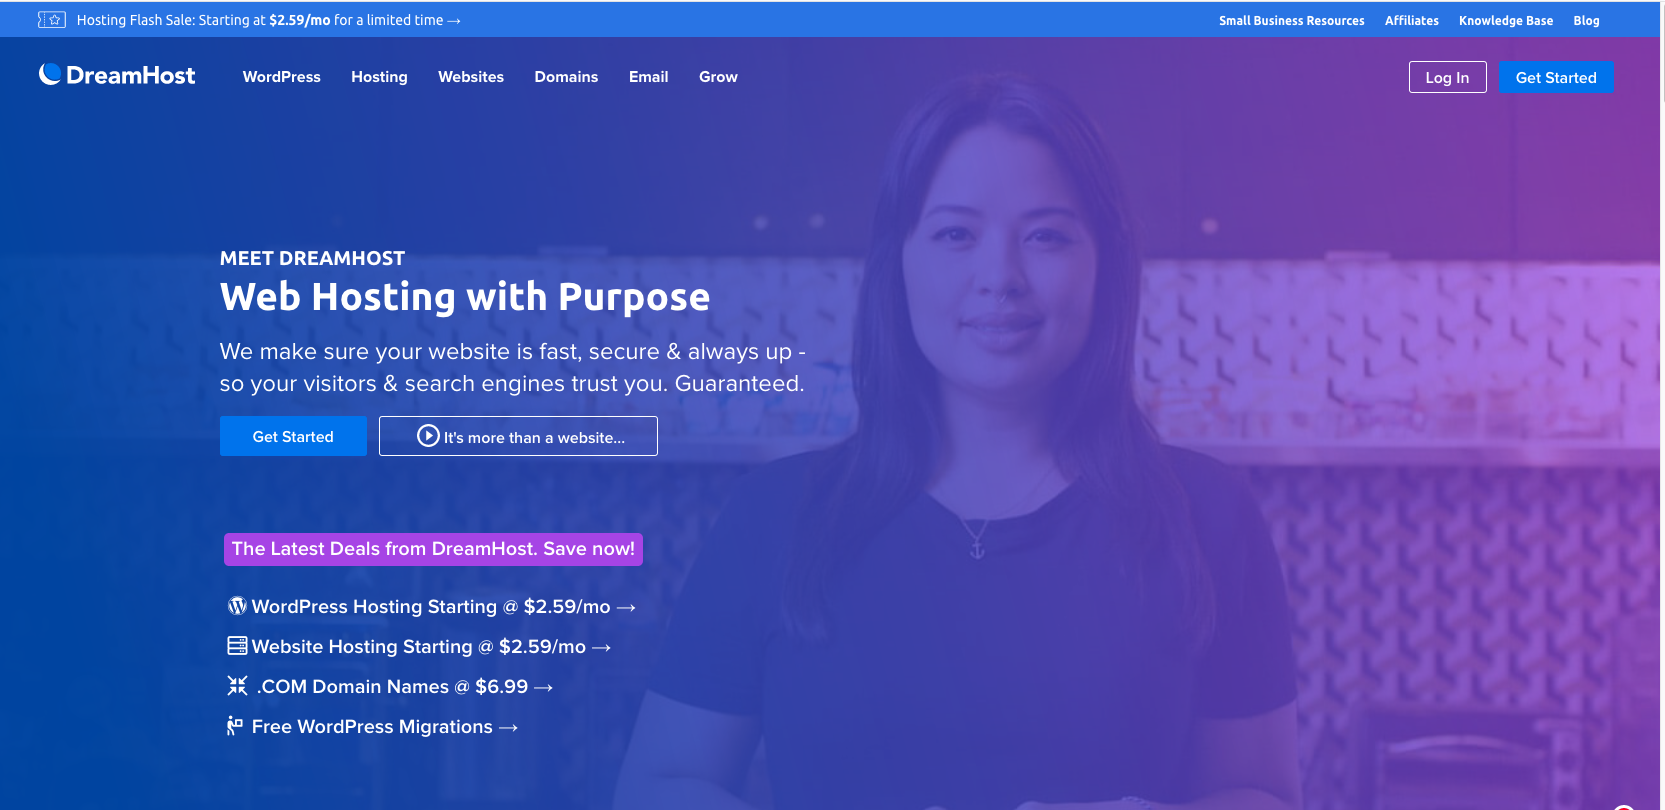 The 17 Best Web Hosting Services for Small Businesses in 2020